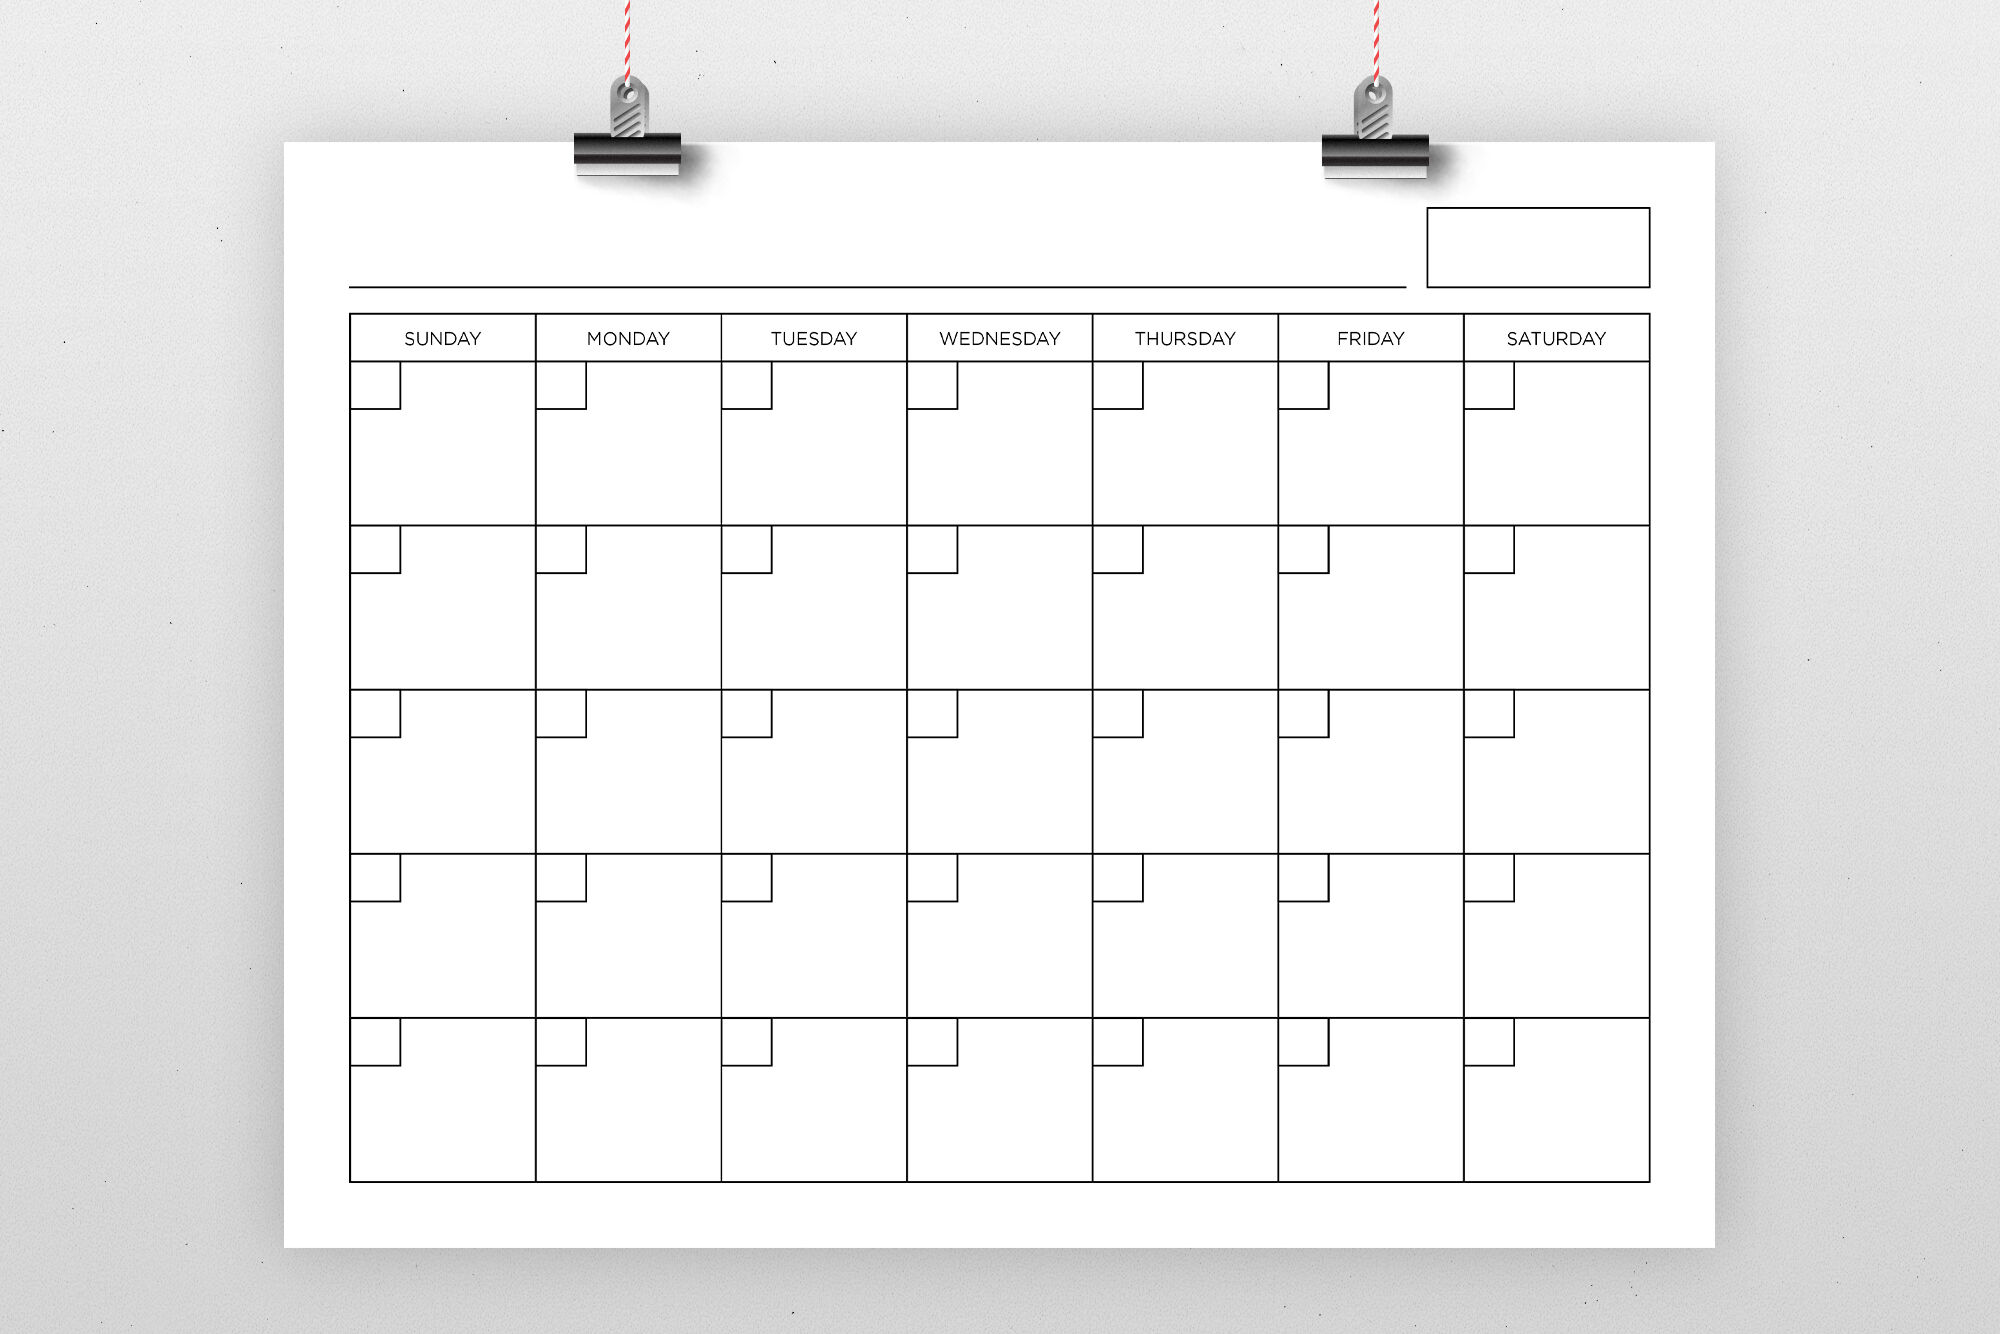 8 5 X 11 Inch Blank Calendar Page Template By Running With Foxes Thehungryjpeg Com